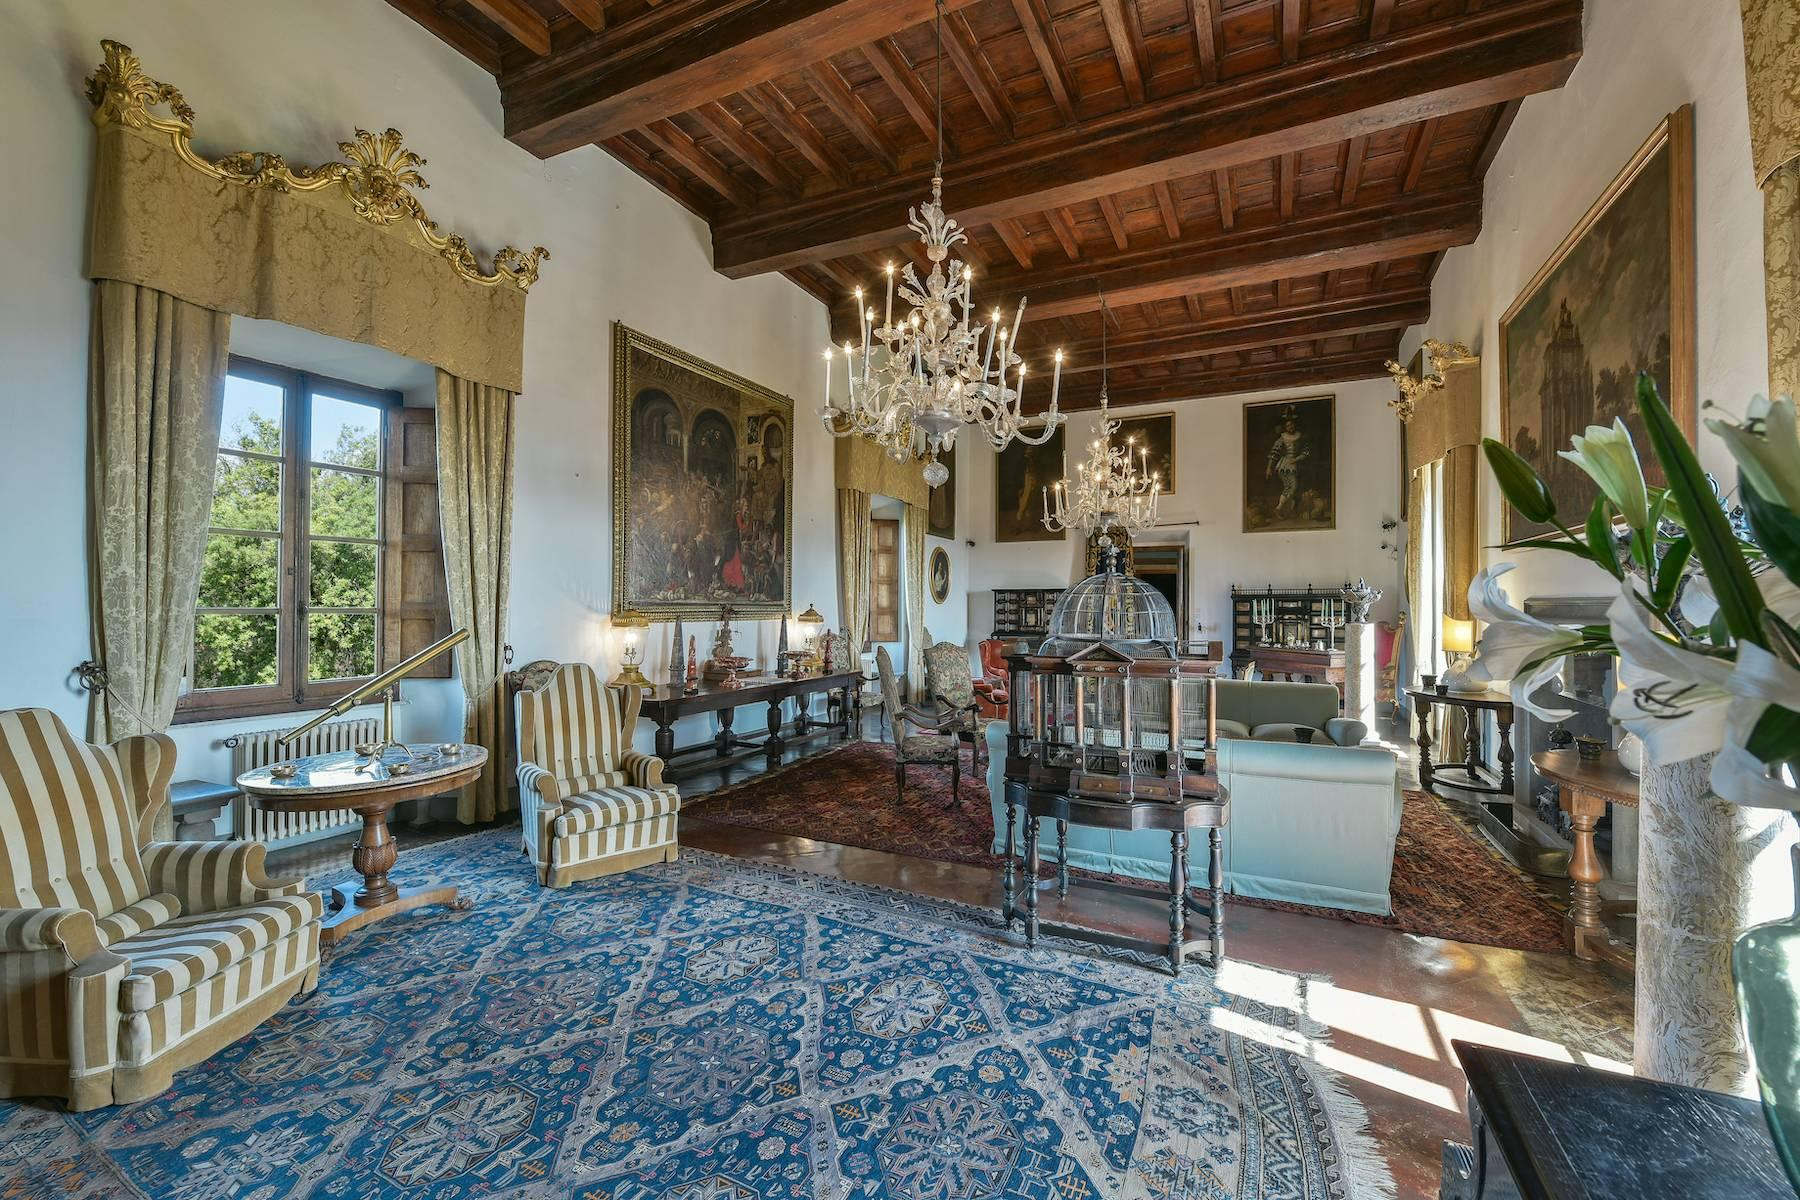 Majestic historical villa in the heart of Tuscany - 6